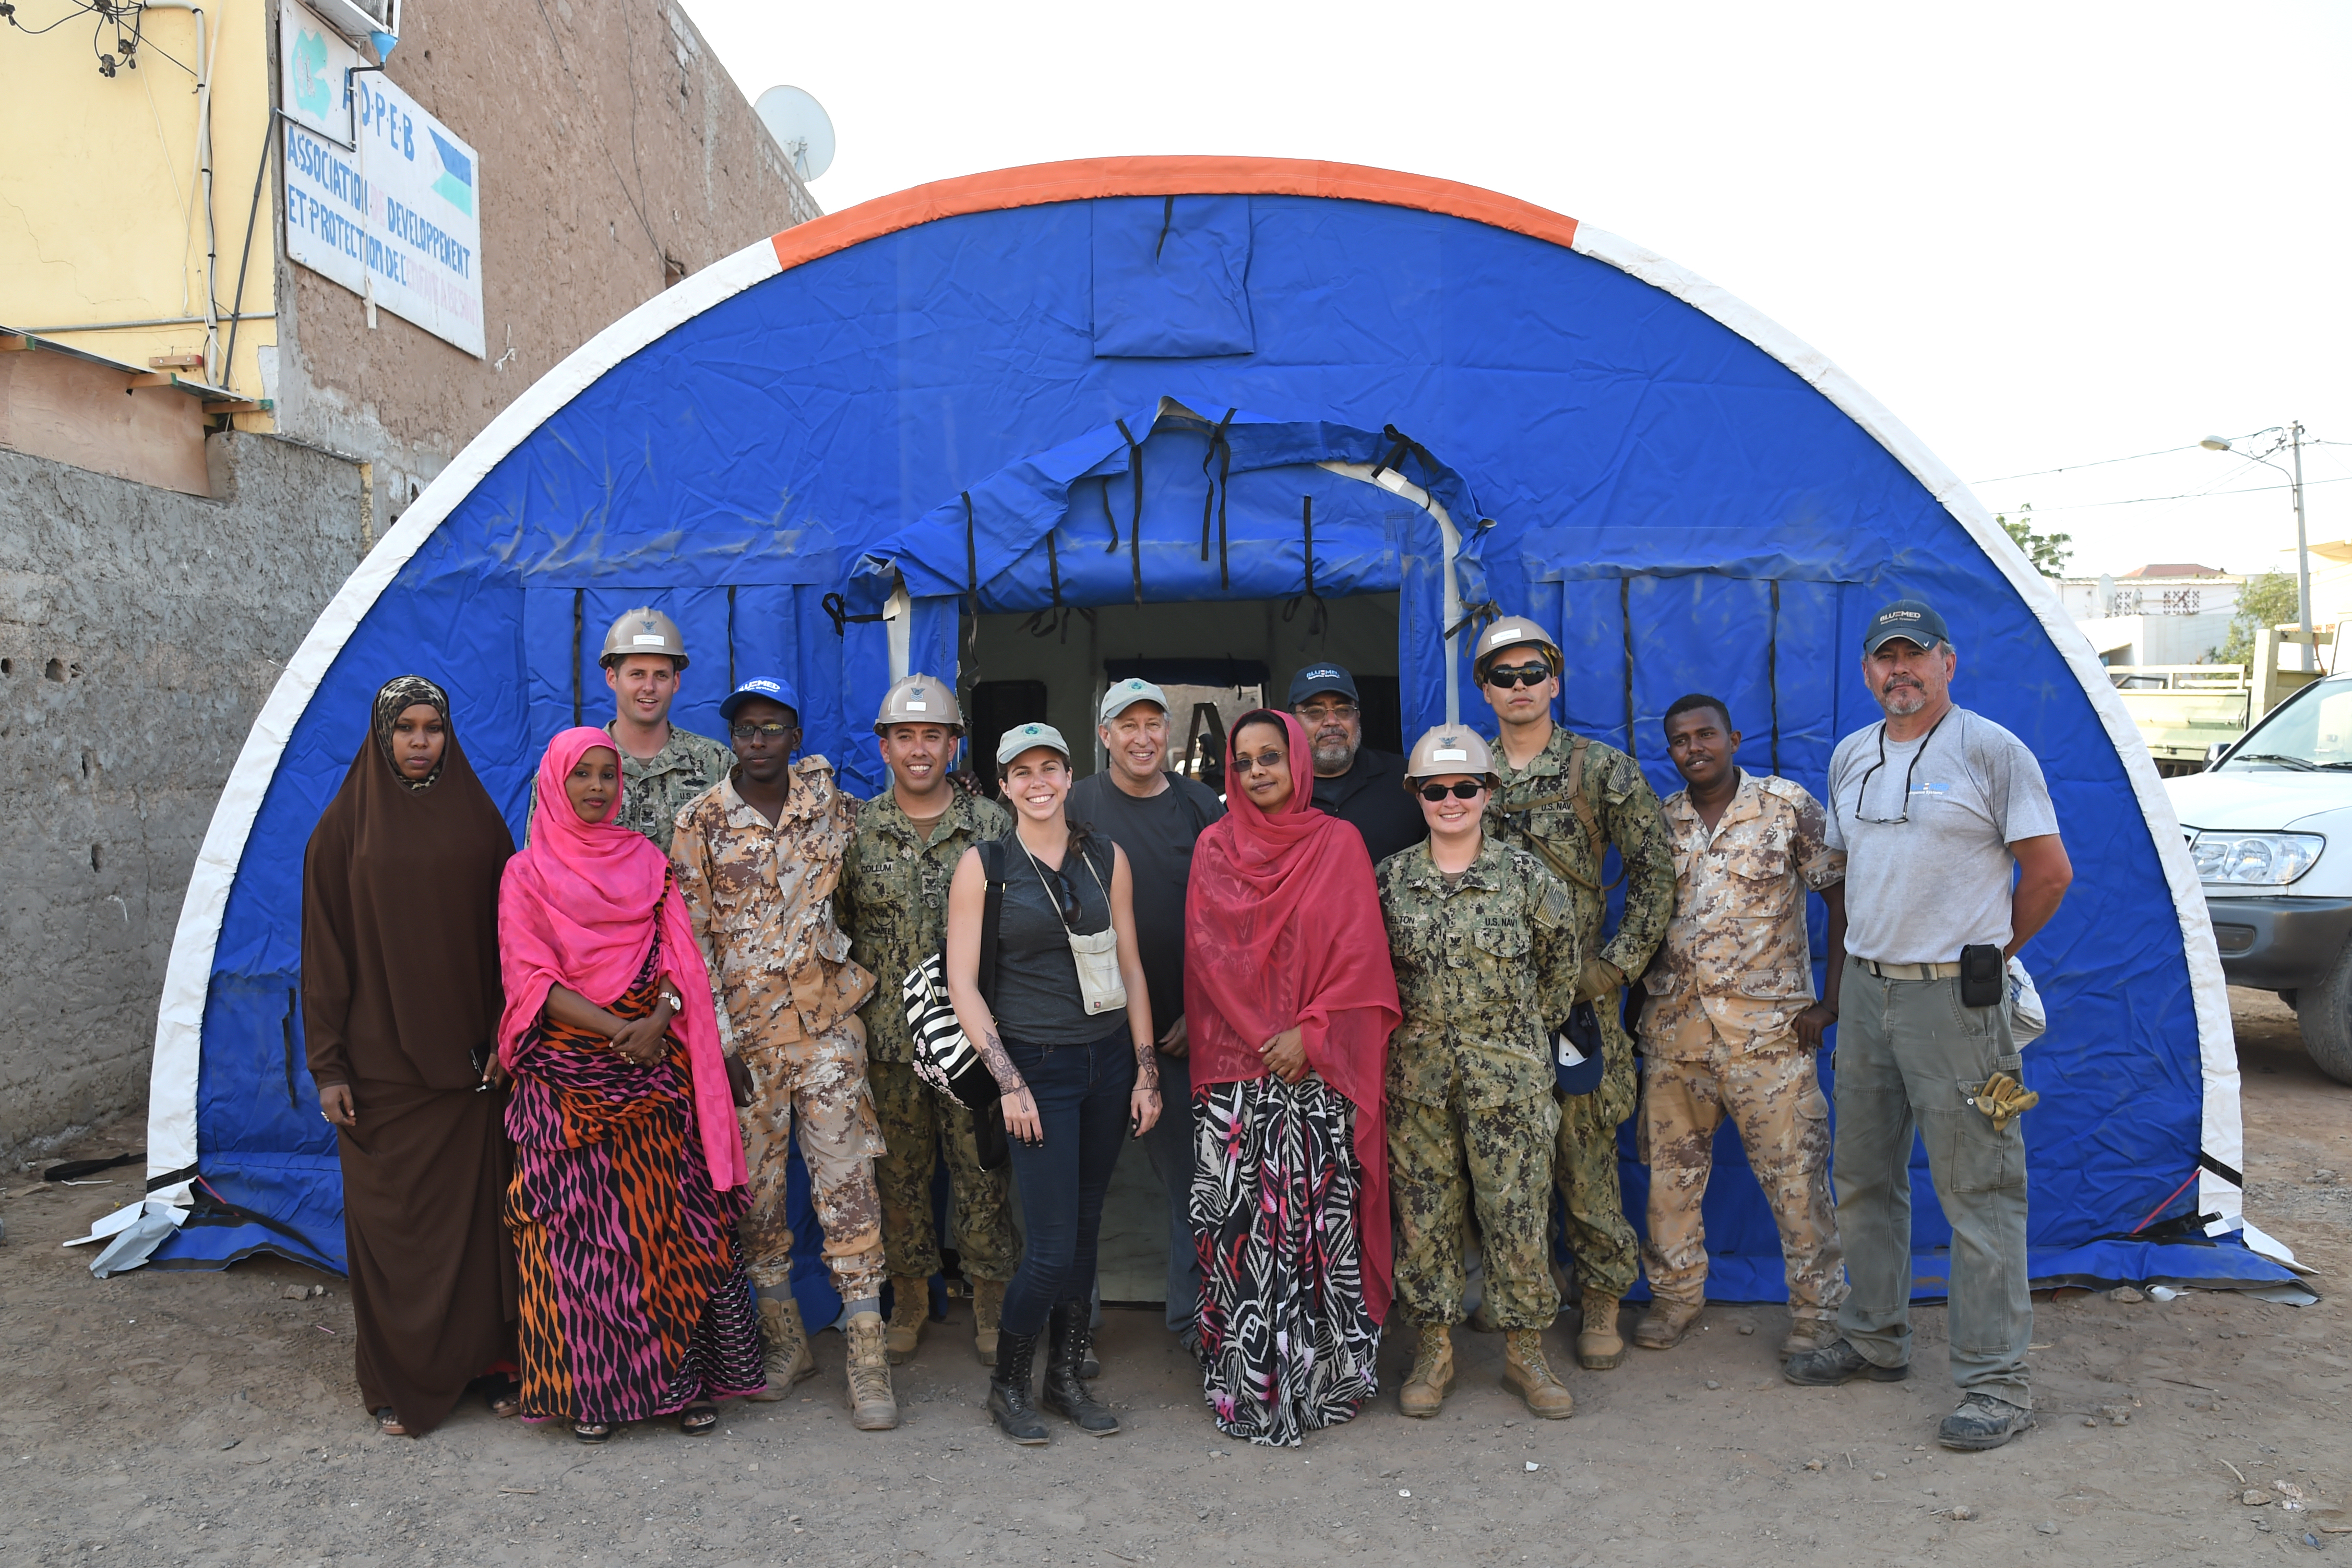 U.S. Navy Seabees with Naval Mobile Construction Battalion 1, join Djibouti Armed Forces soldiers, and representatives from Alaska Shelters, the Global Action Coalition and the Association for the Development and Protection of Children (ADPEB) following the construction of a modular shelter system in Djibouti City, Feb. 27, 2017. The shelter is one of six donated by Alaska Shelters through the Global Action Coalition, and will give the ADPEB additional shelter and classroom space for homeless children in Djibouti. (U.S. Air National Guard photo by Master Sgt. Paul Gorman)